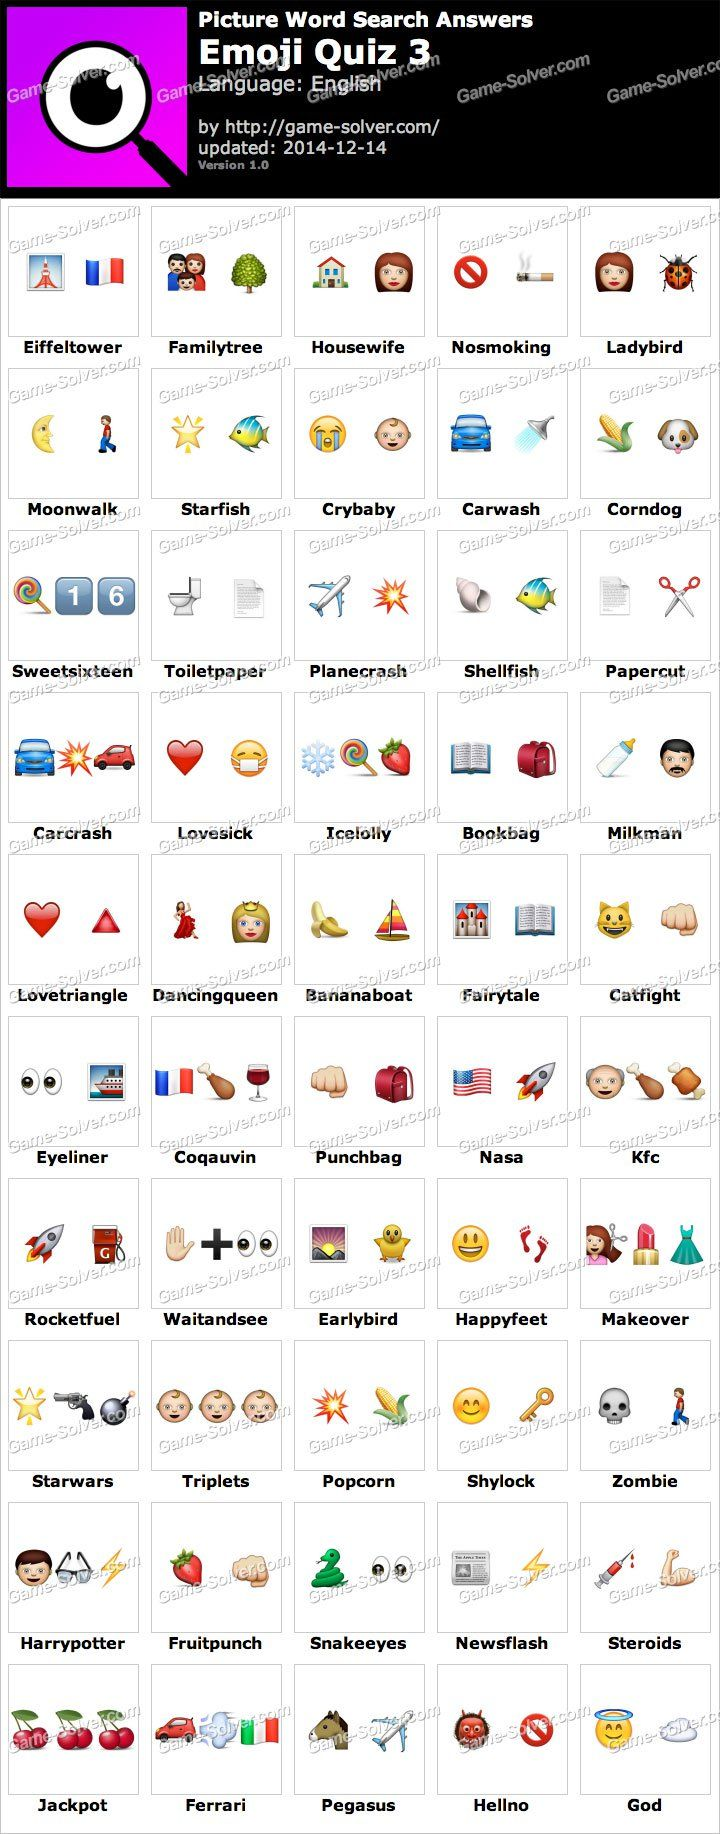 Picture Word Search Emoji Quiz 3 Answers Emoji words